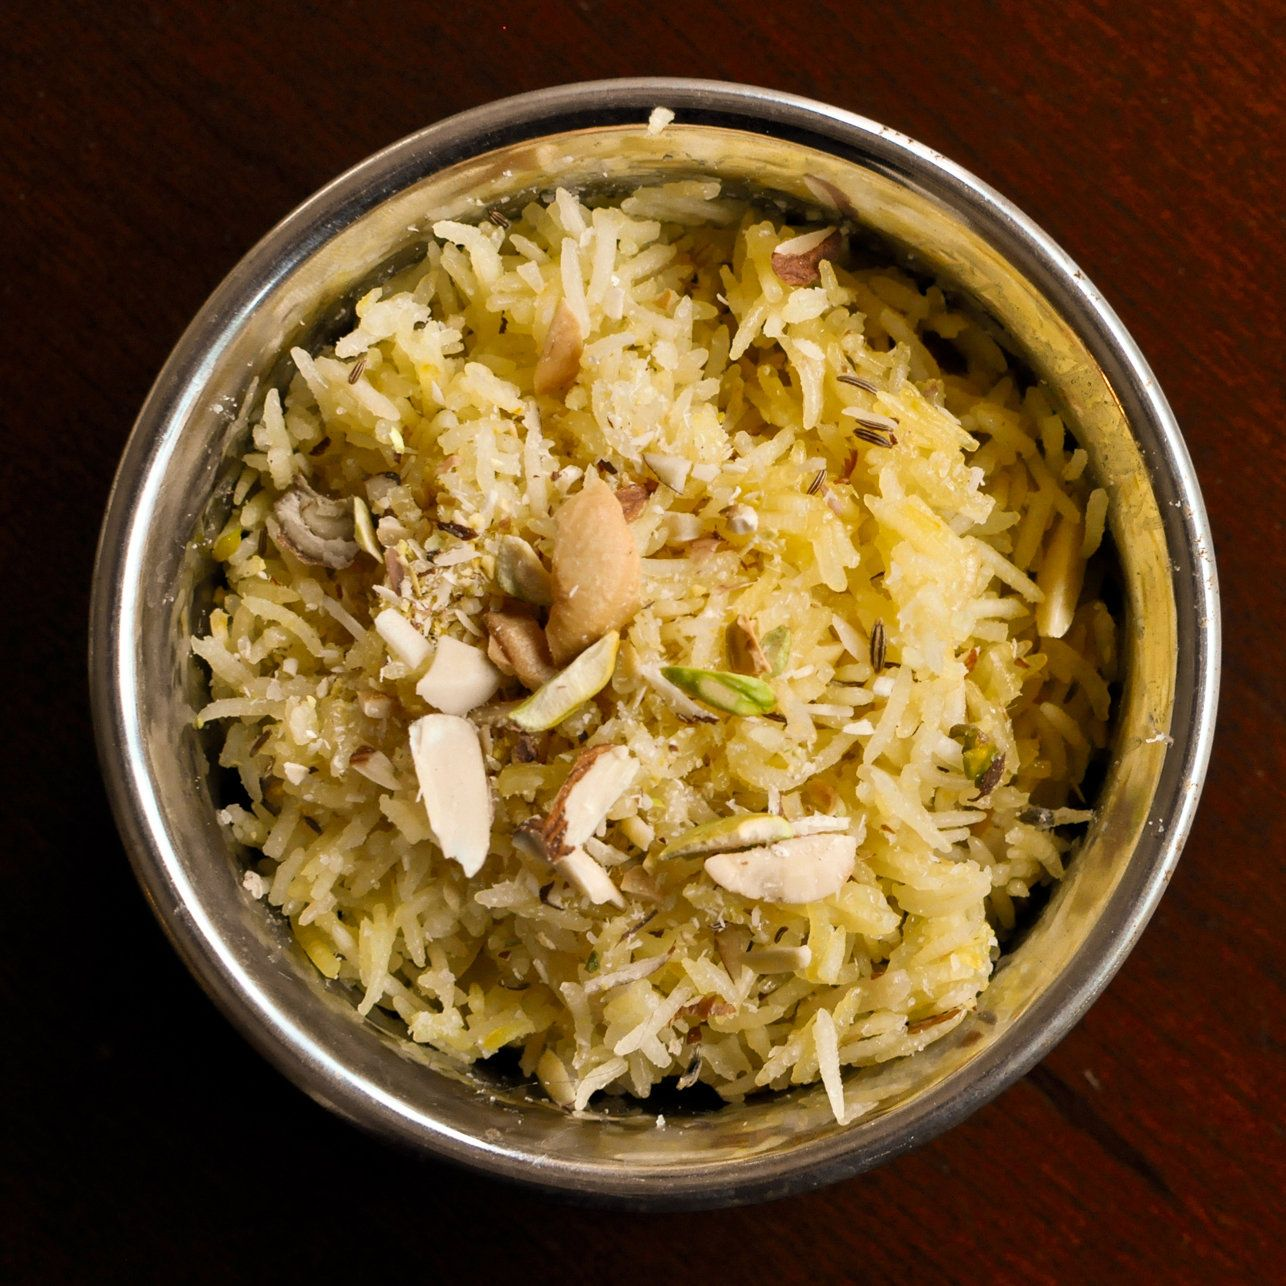 The tahri that binds how a sweet rice dish connects a woman to her npr delivers breaking national and world news also top stories from business politics forumfinder Choice Image